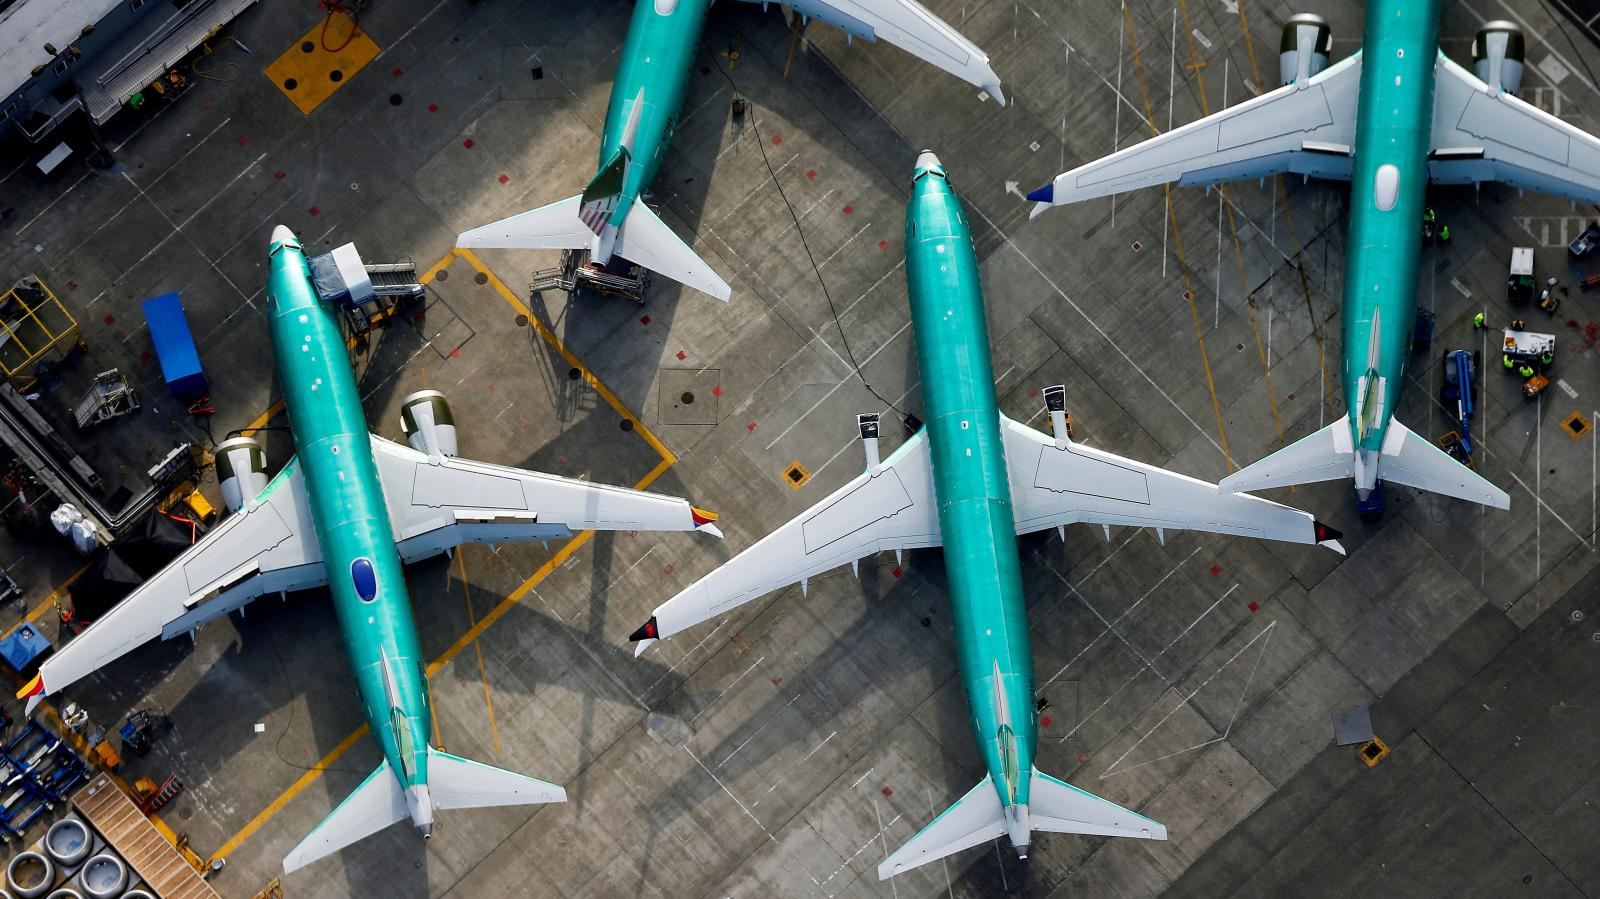 boeing-737-max-airplanes-e1553294592276